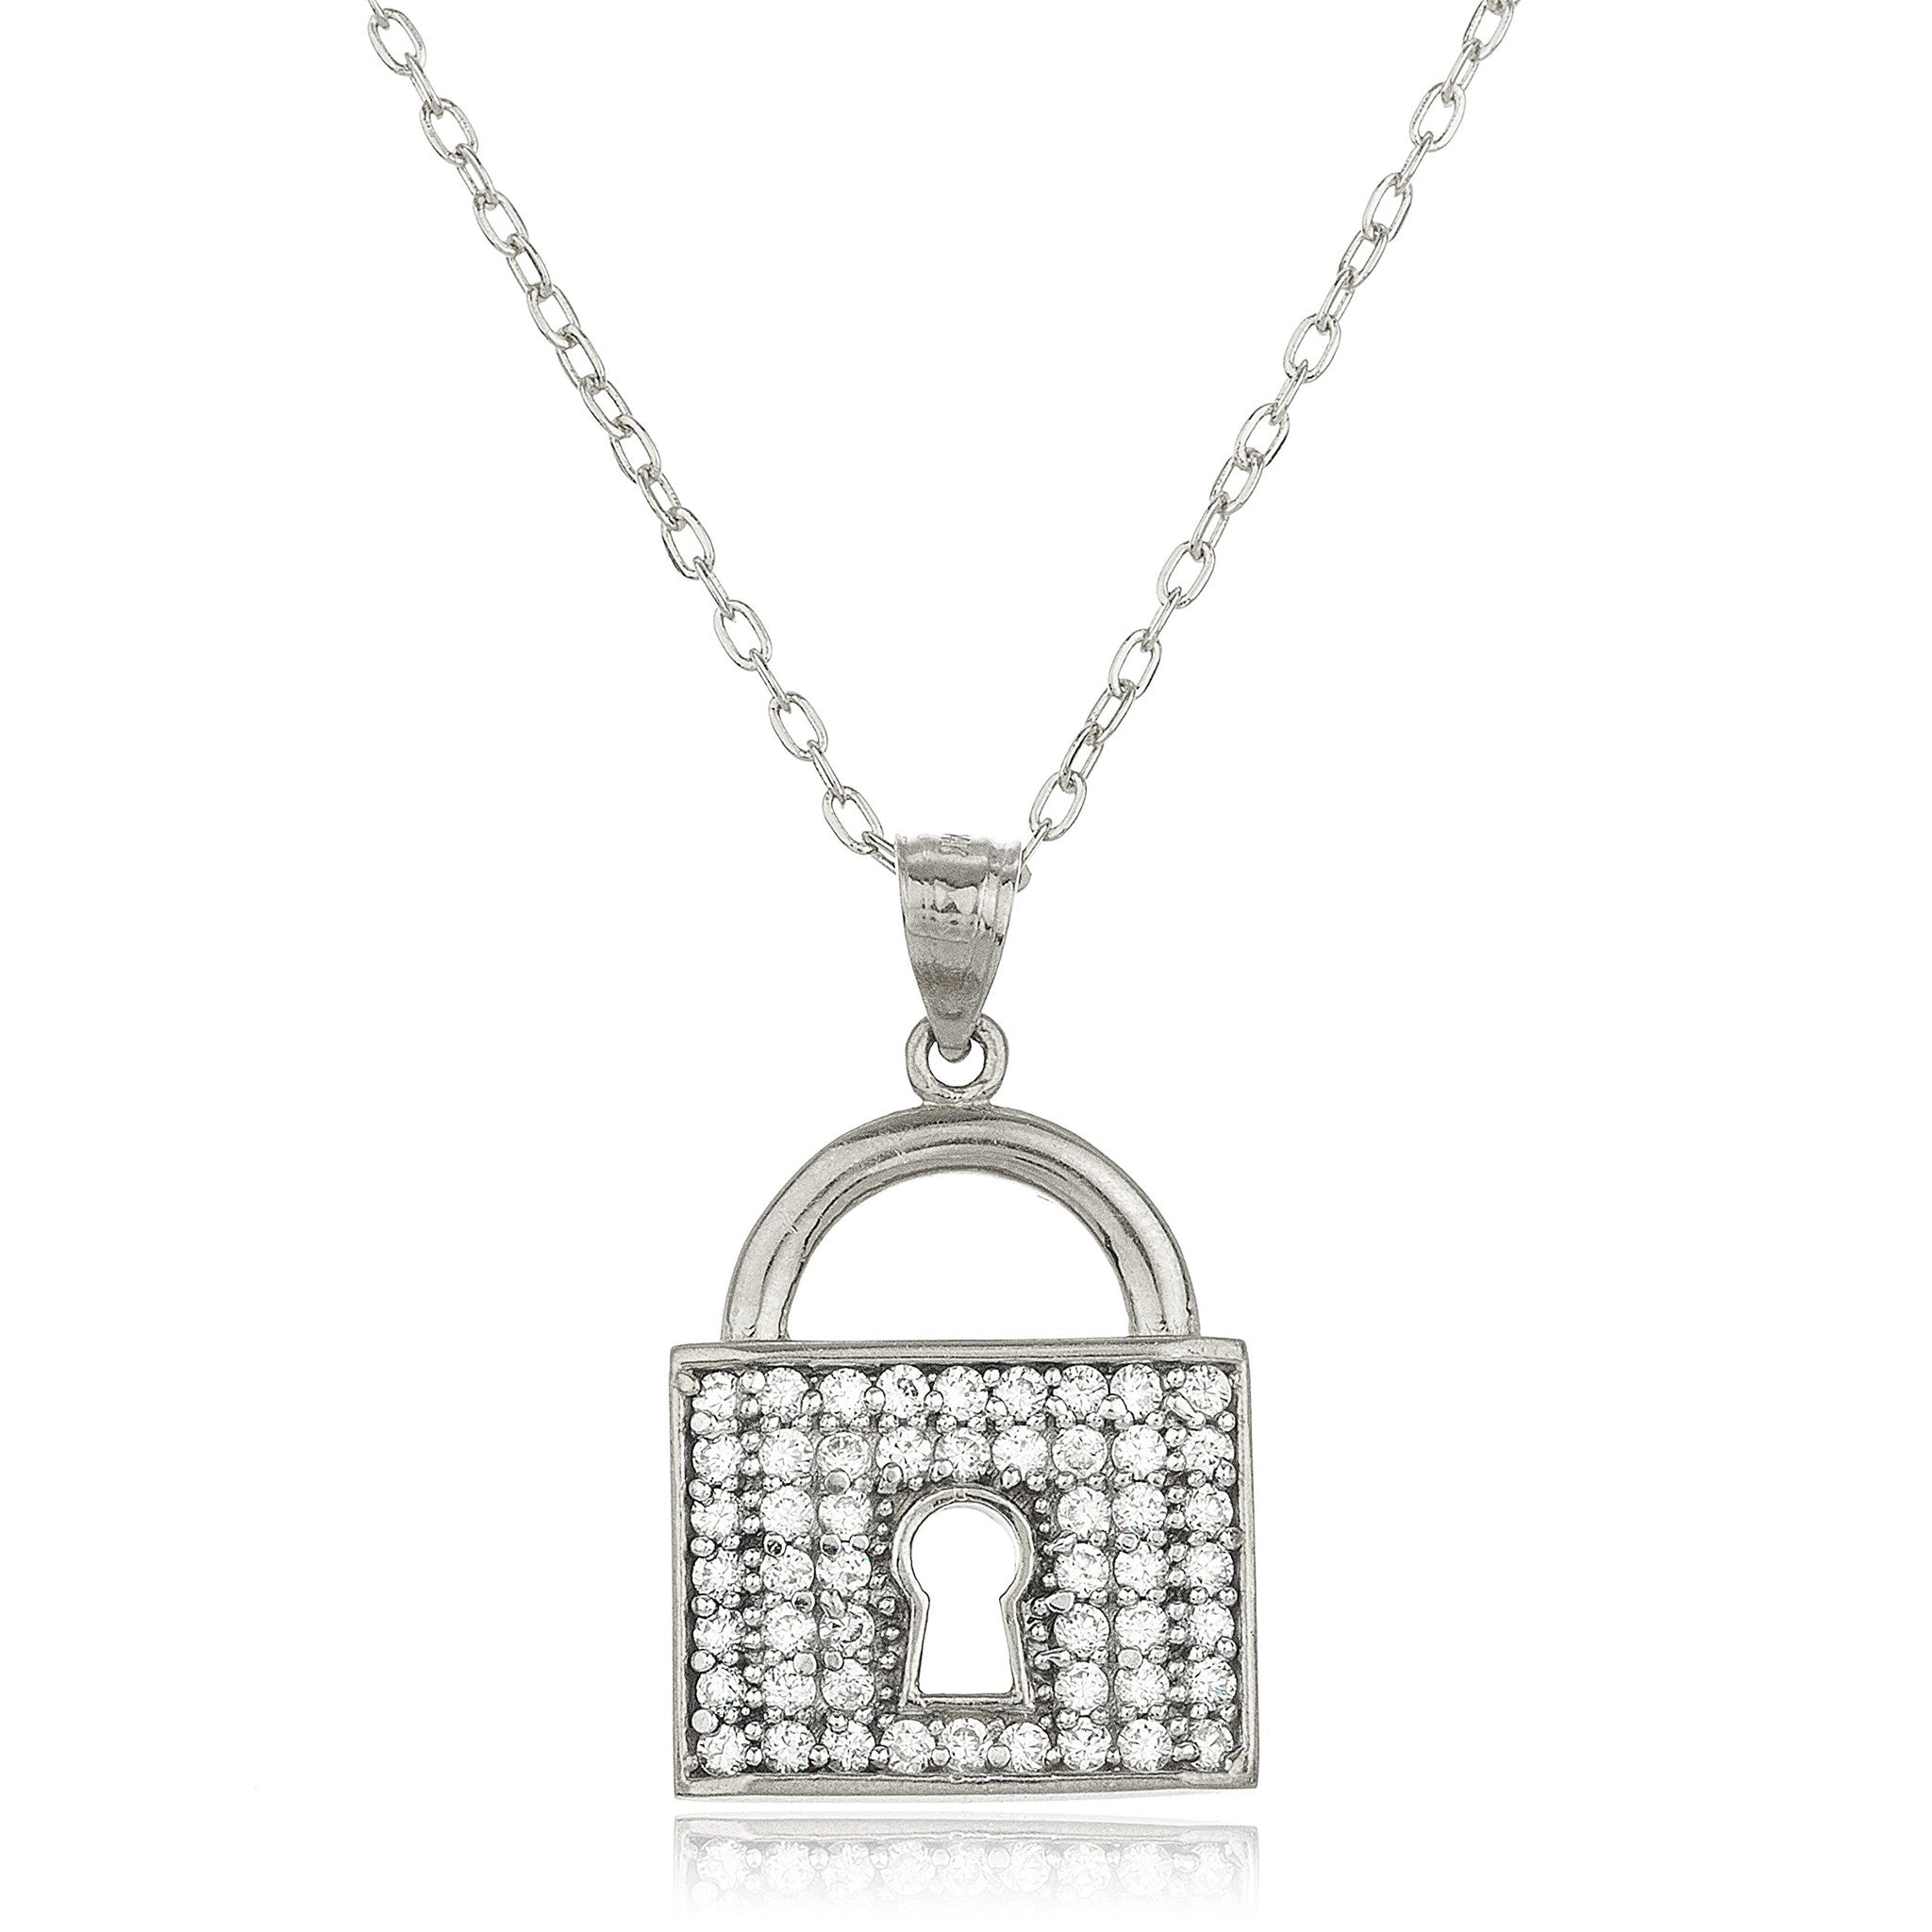 abaza lock sarah jewelry product necklace